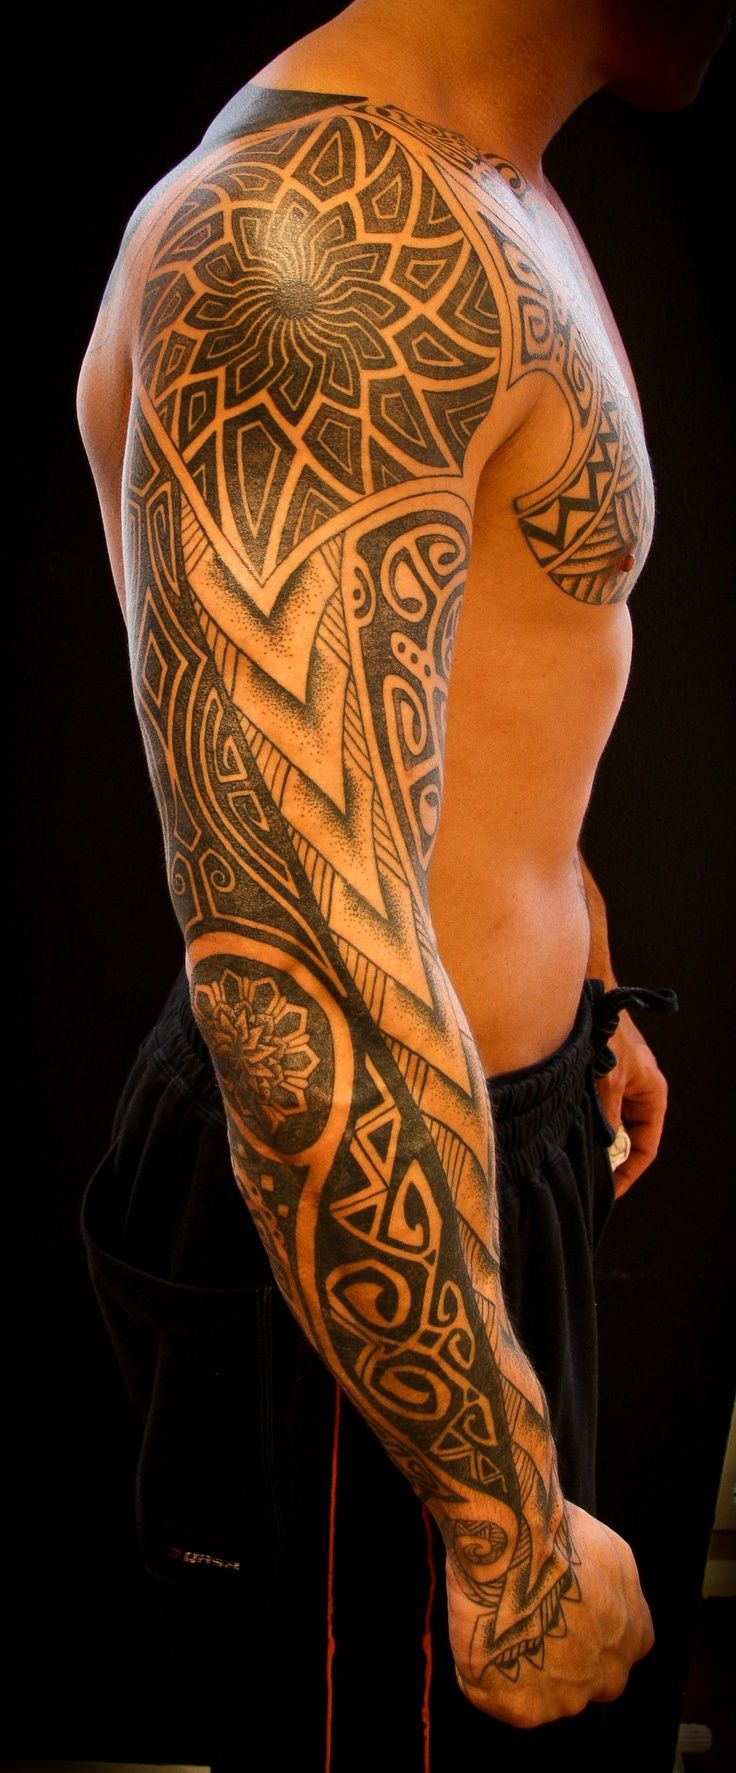 Male Tattoo Ideas Barbed Wire Weapons Skulls And The Devil for size 736 X 1773